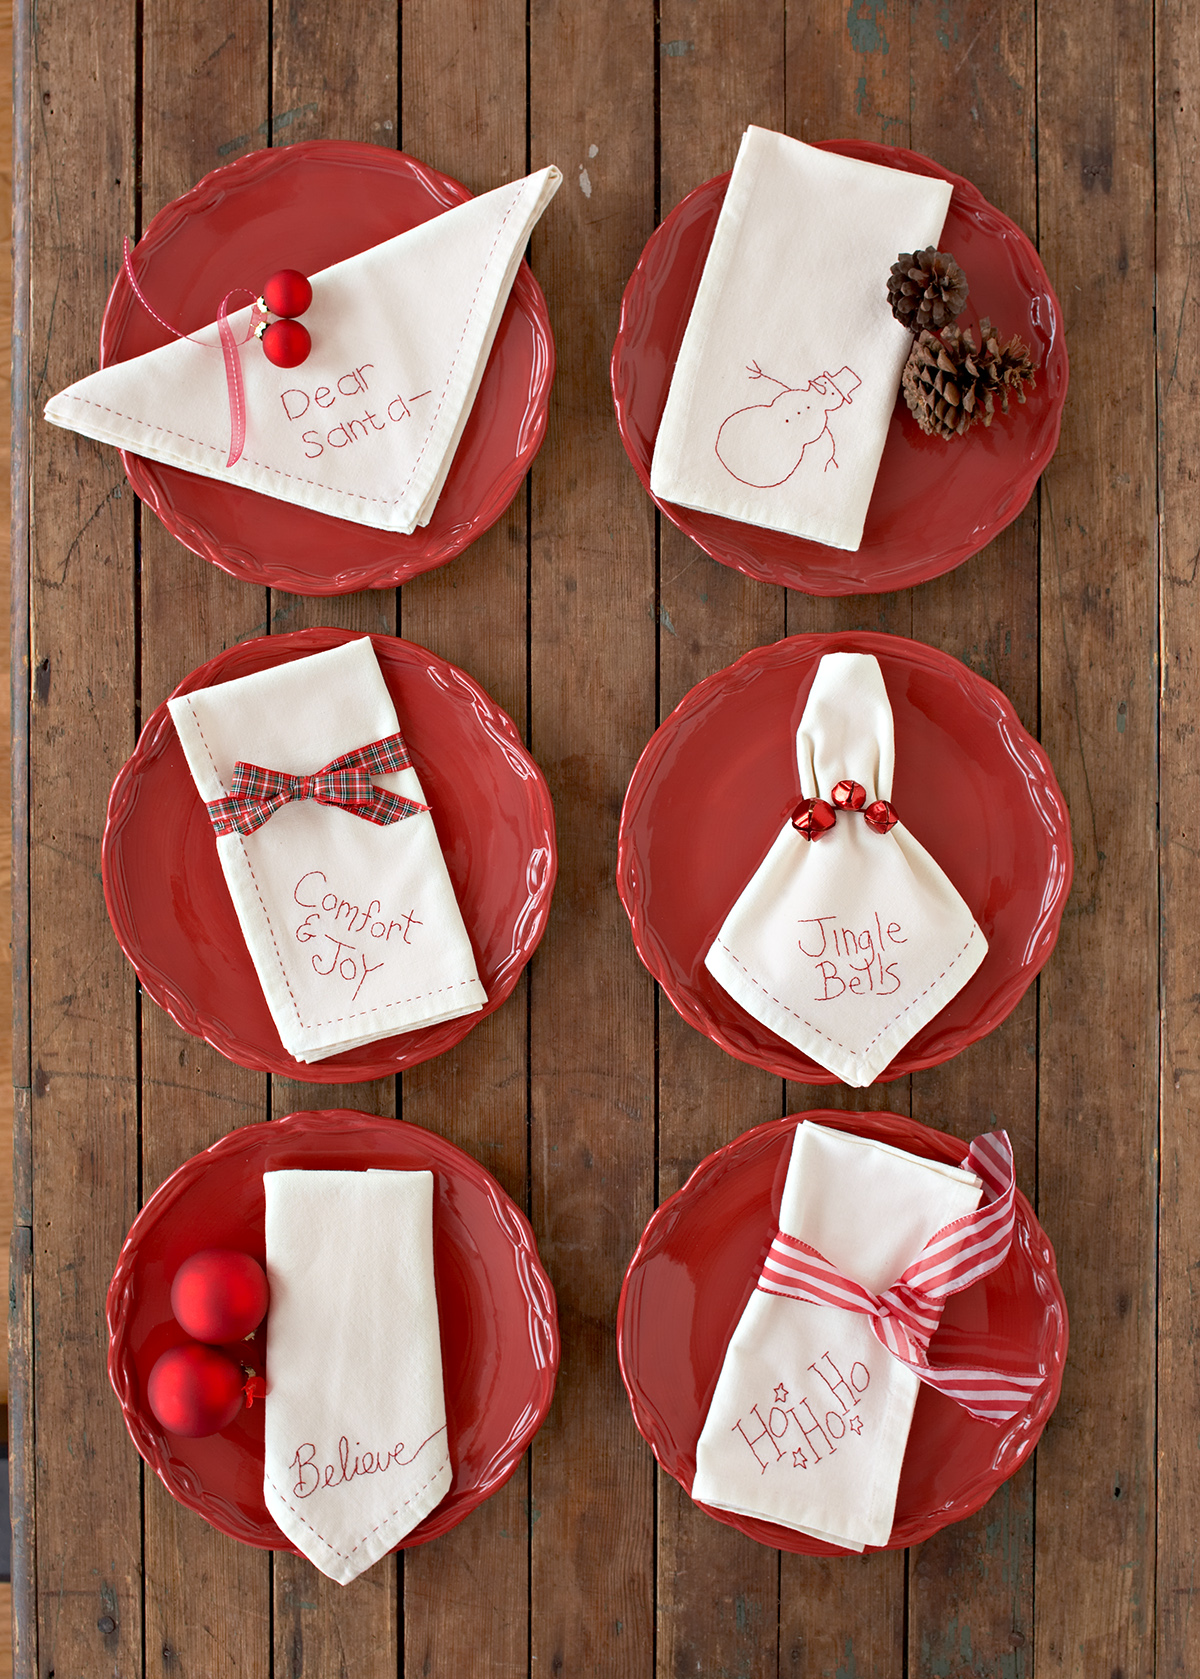 red plates with white napkins embroidered with various holiday sayings